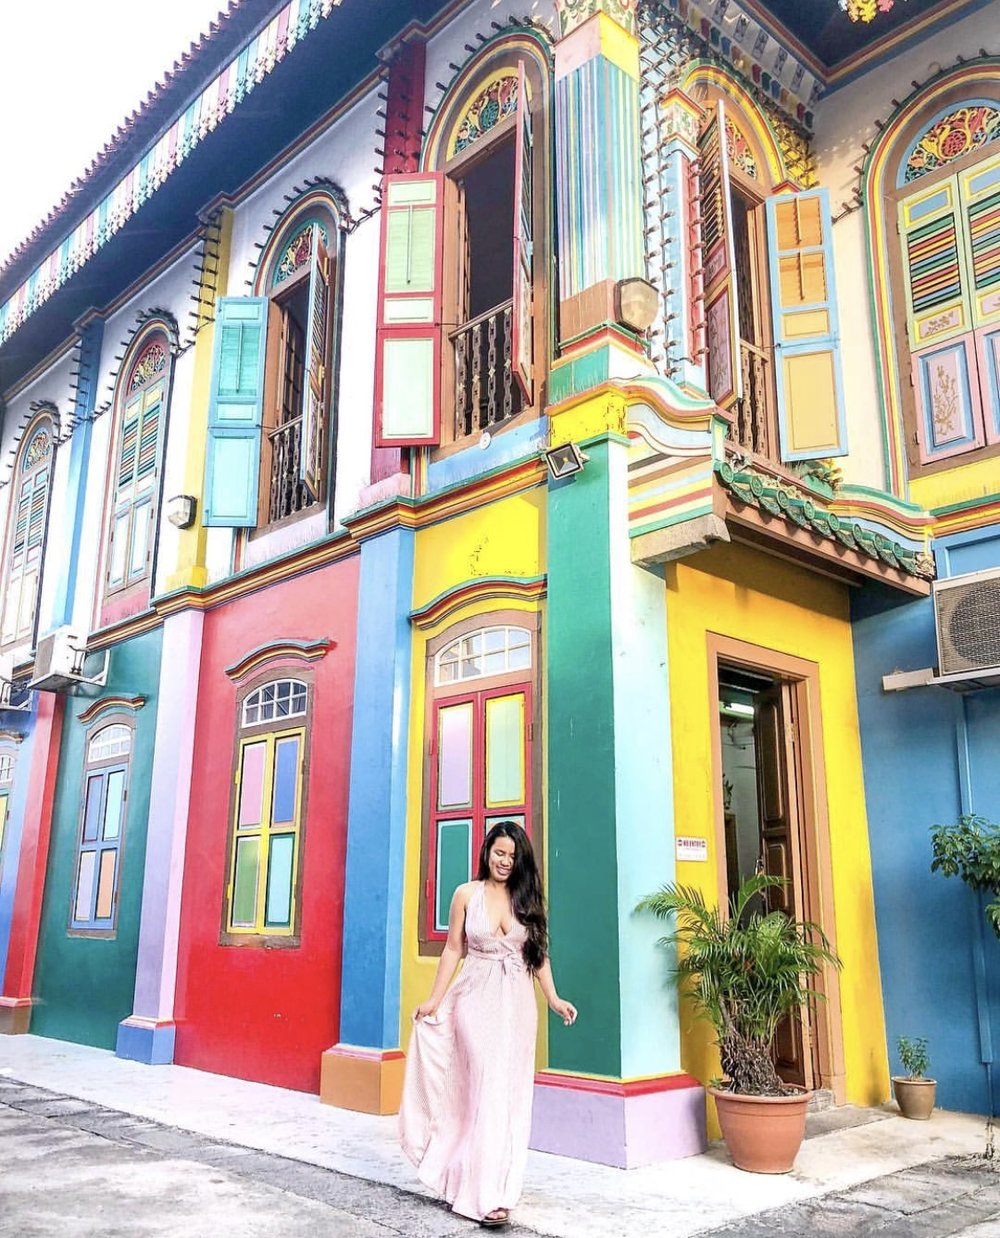 Spent a total of 26 SGD ($19) to take a picture in front of this house because this was farrrr away from where I was staying, I had work and wasn't going to go to this area so I took a cab and went at the crack of dawn right before work